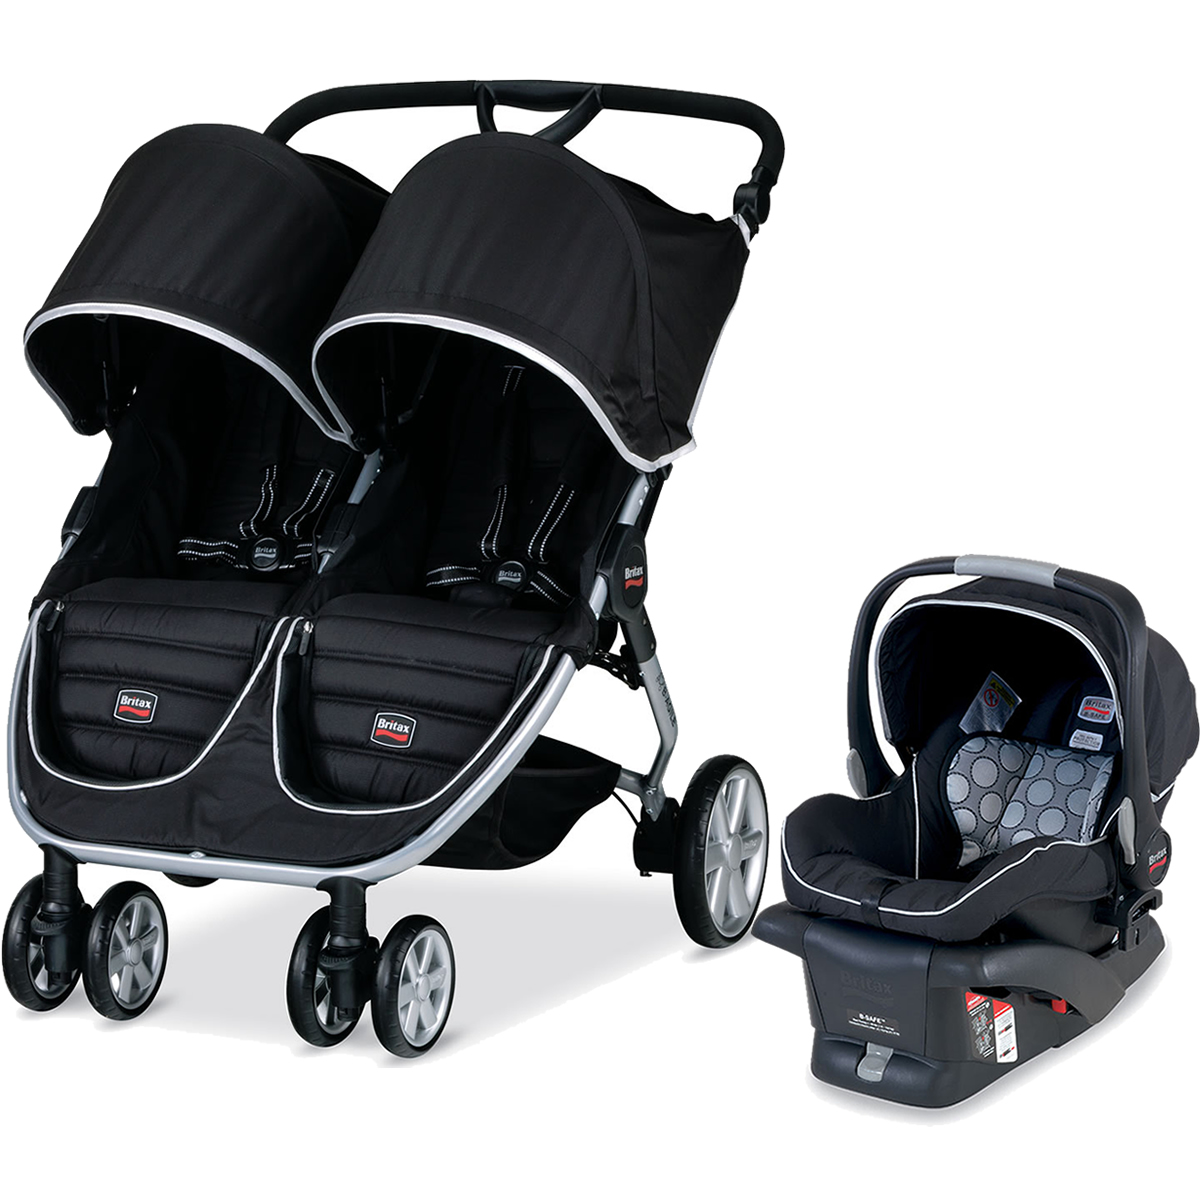 albee britax b agile travel system autos post. Black Bedroom Furniture Sets. Home Design Ideas